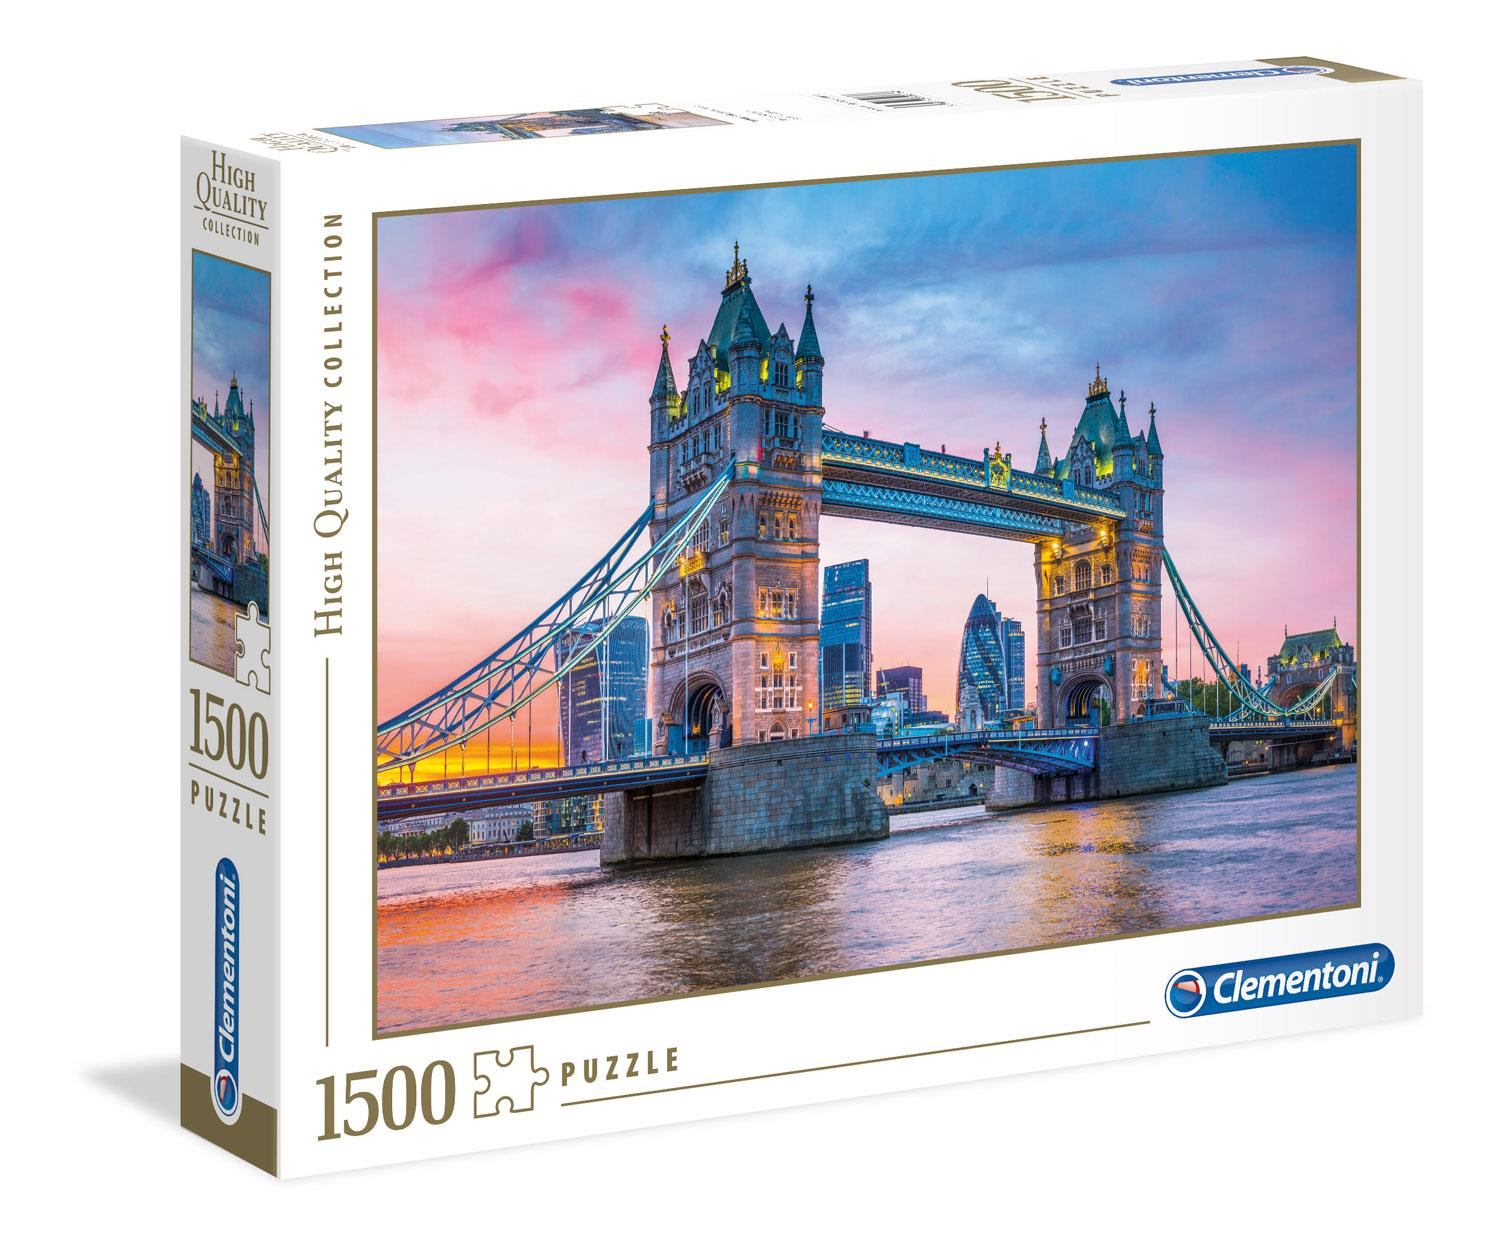 Clementoni High Quality Tower Bridge Sunset Jigsaw Puzzle (1500 Pieces)